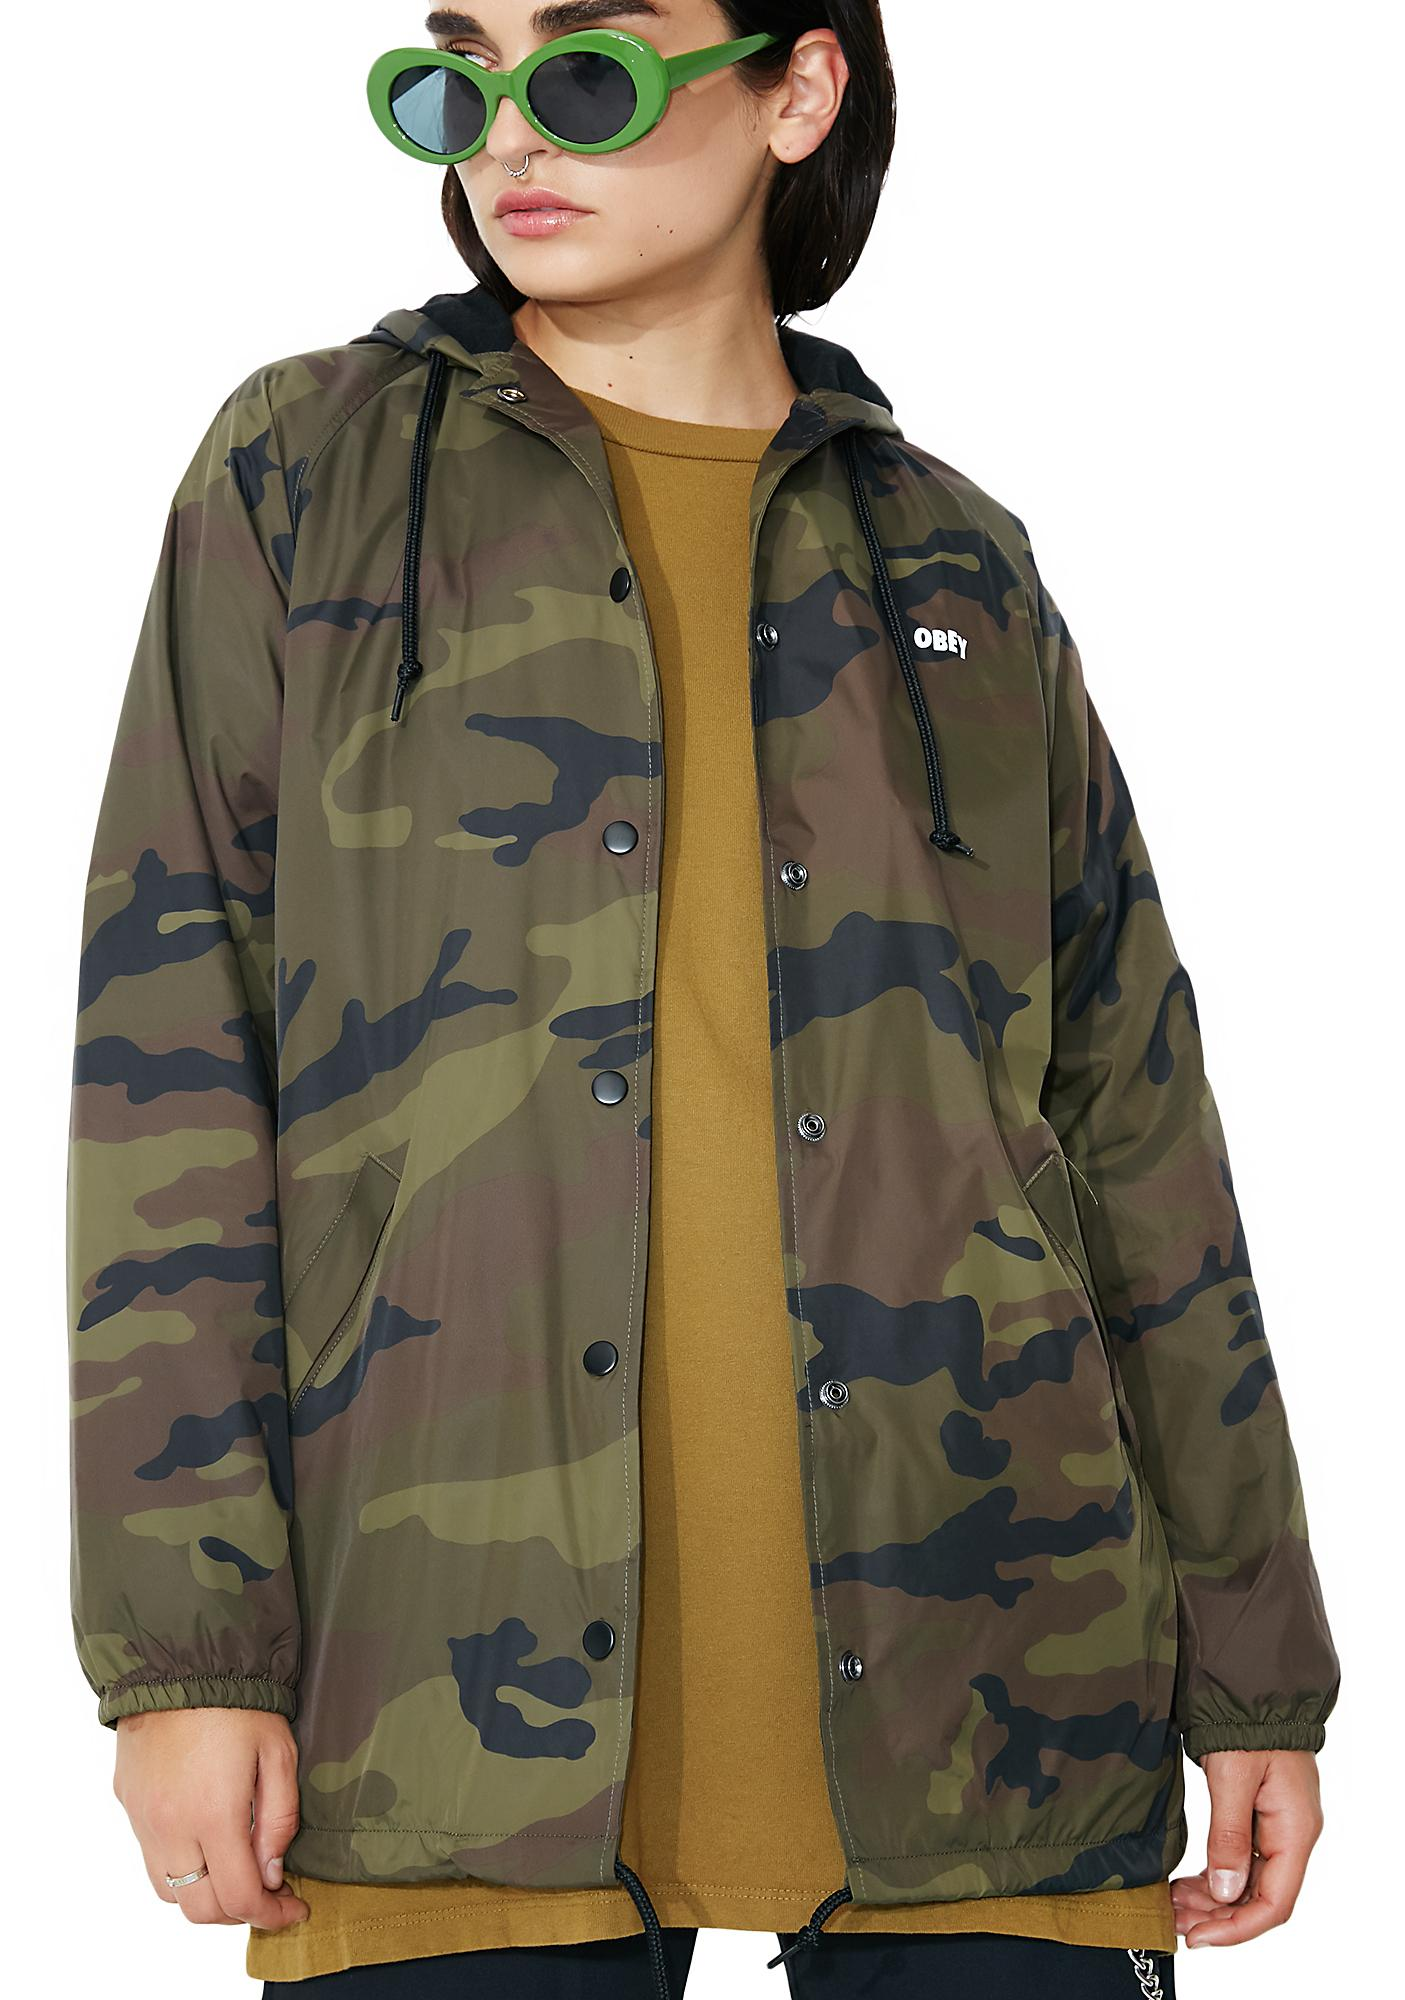 Obey Dominance Hooded Coach Jacket